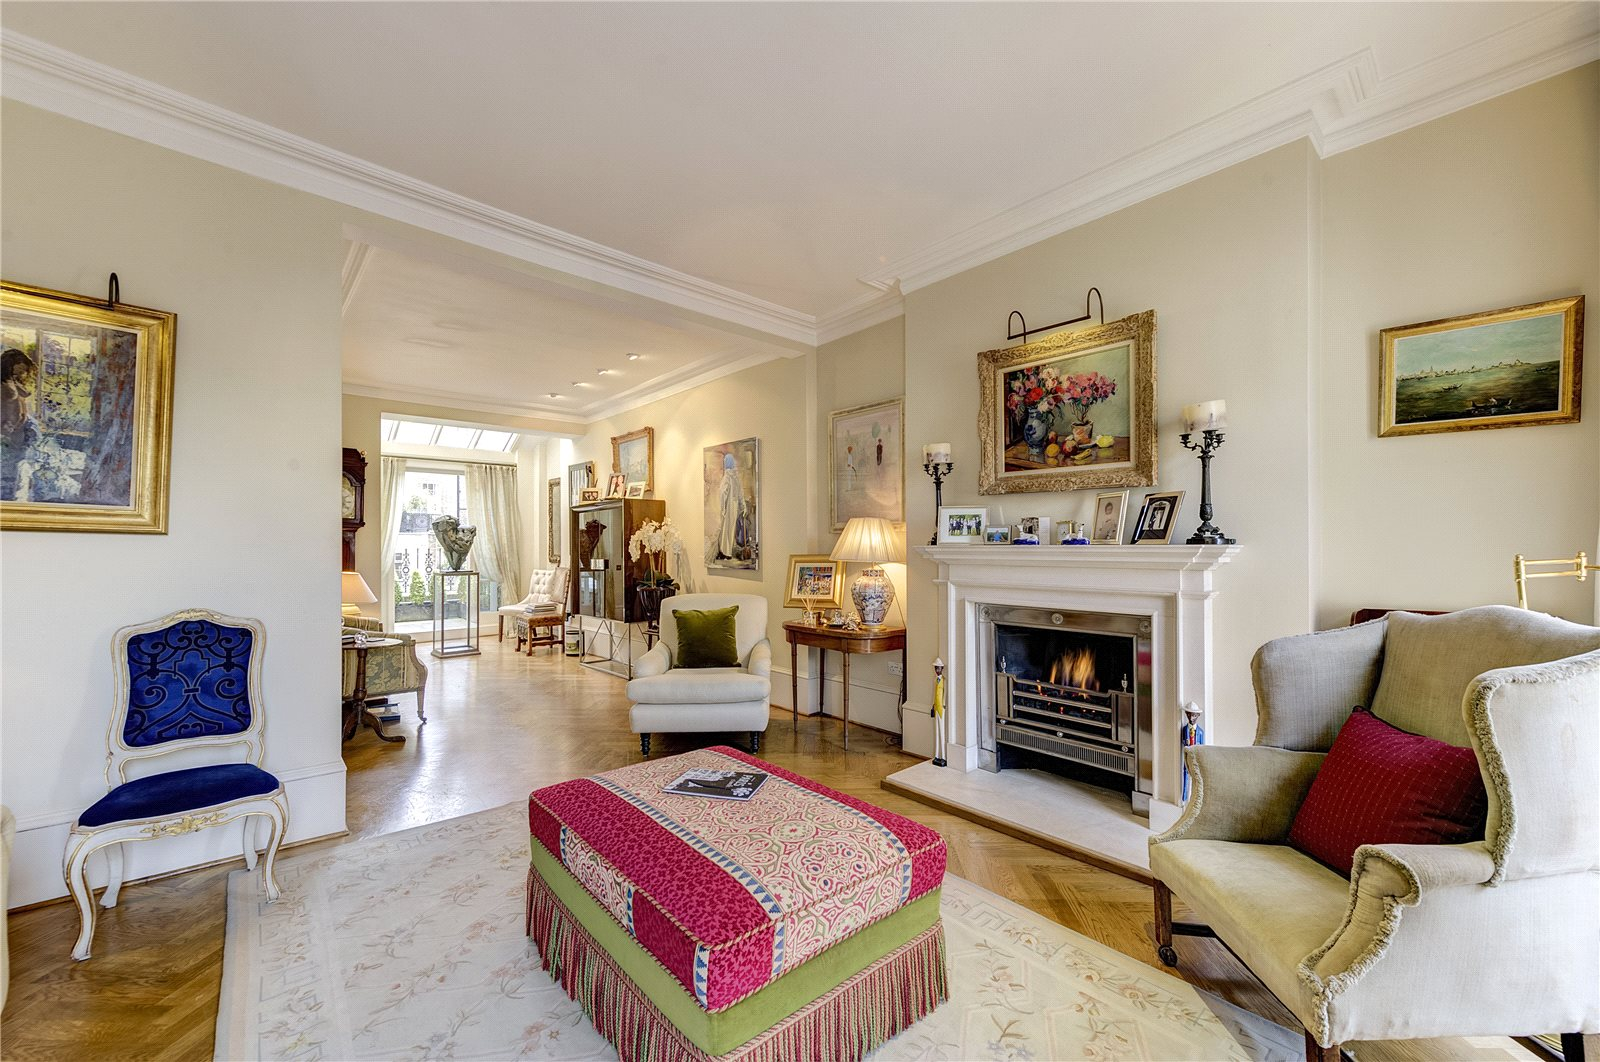 Single Family Home for Sale at Eaton Terrace, London, SW1W London, England